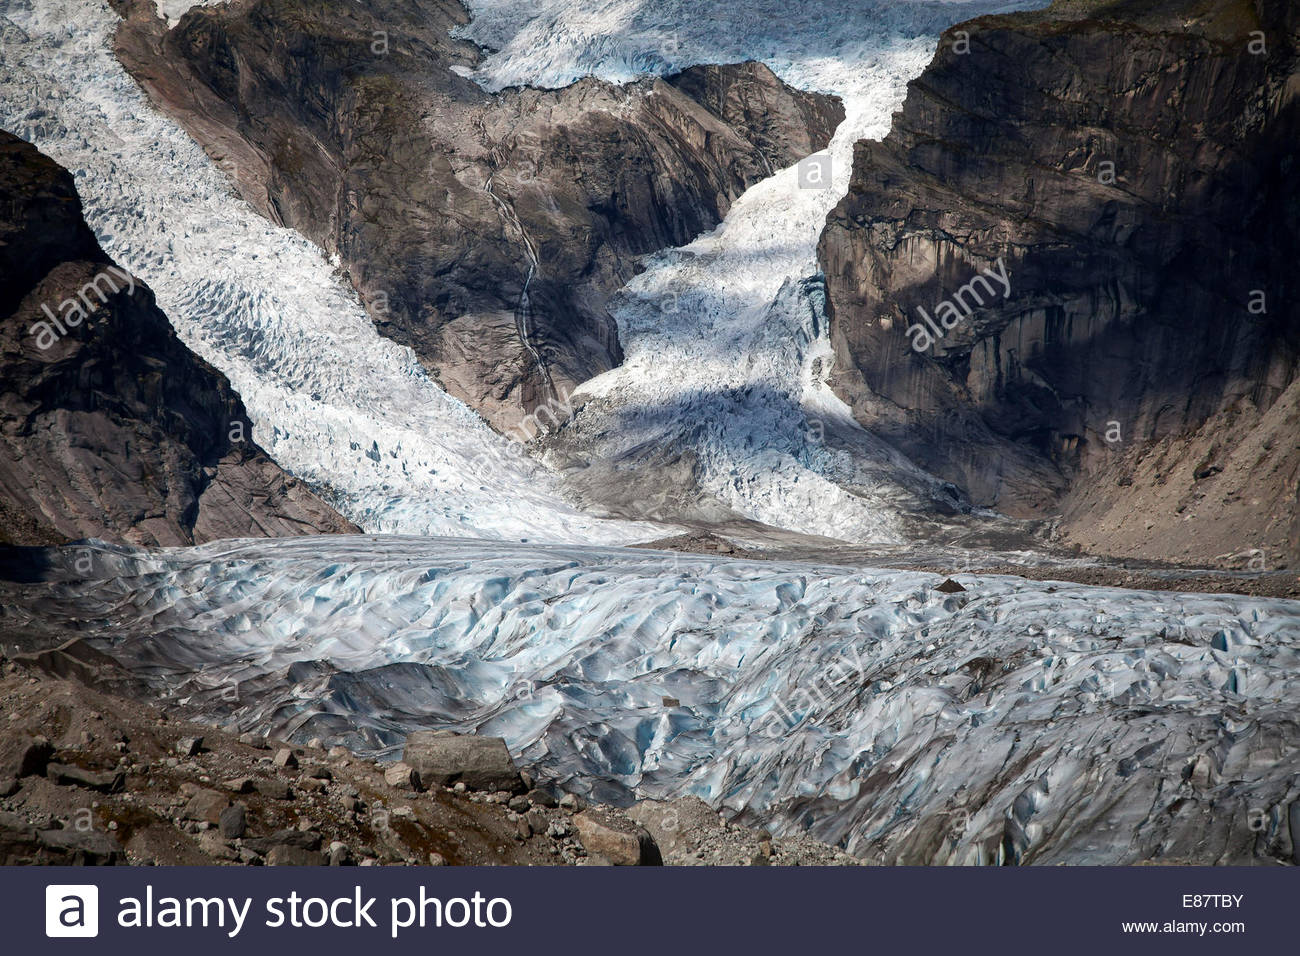 Two glacier tongues of the Austerdalsbreen, tongues of the Jostedalsbreen unite in the valley, glacier ice - Stock Image